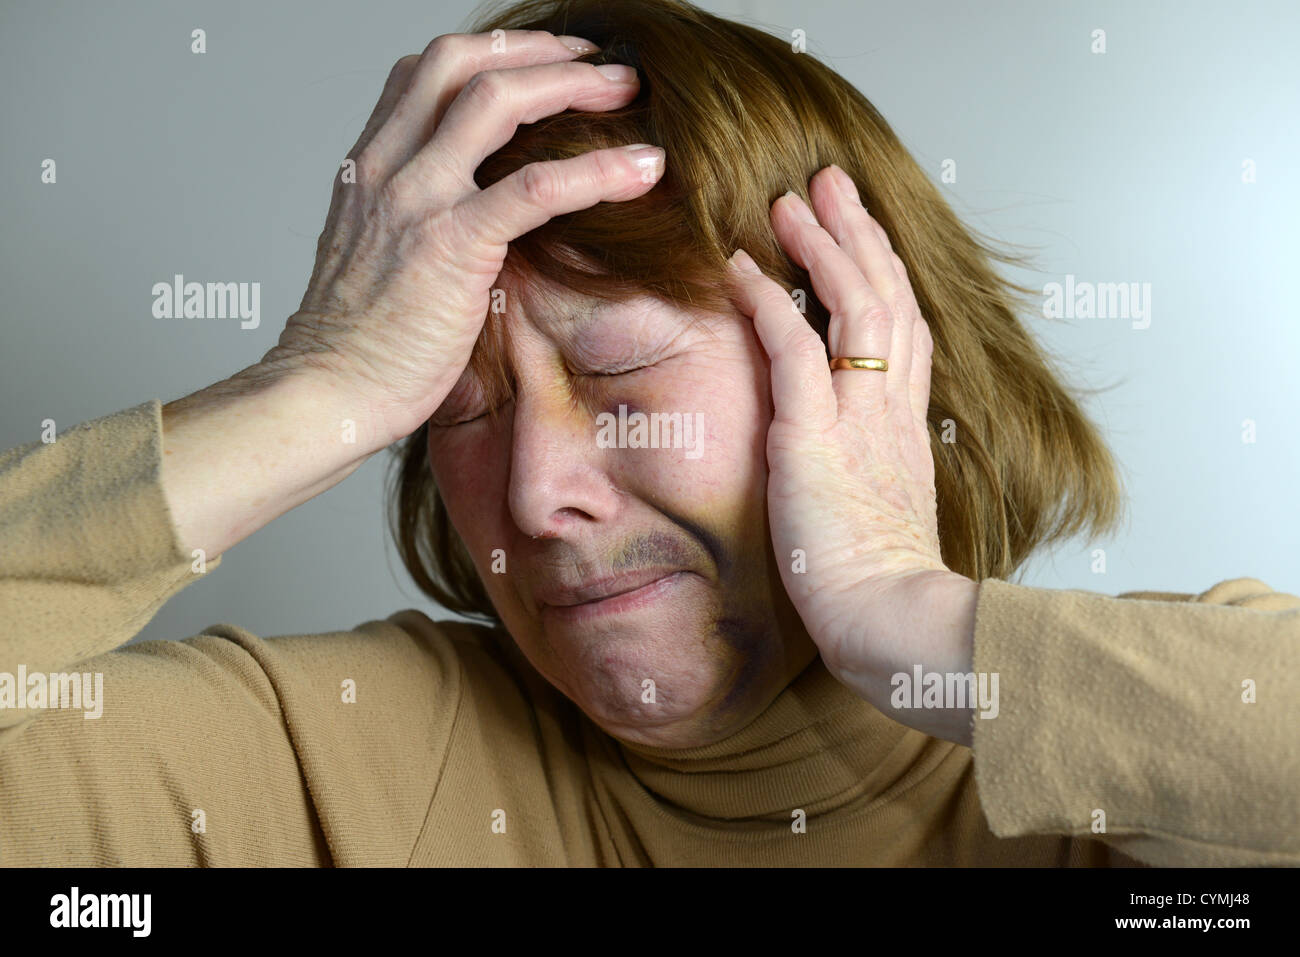 Domestic violence Battered and bruised woman portraying domestic violence - Stock Image